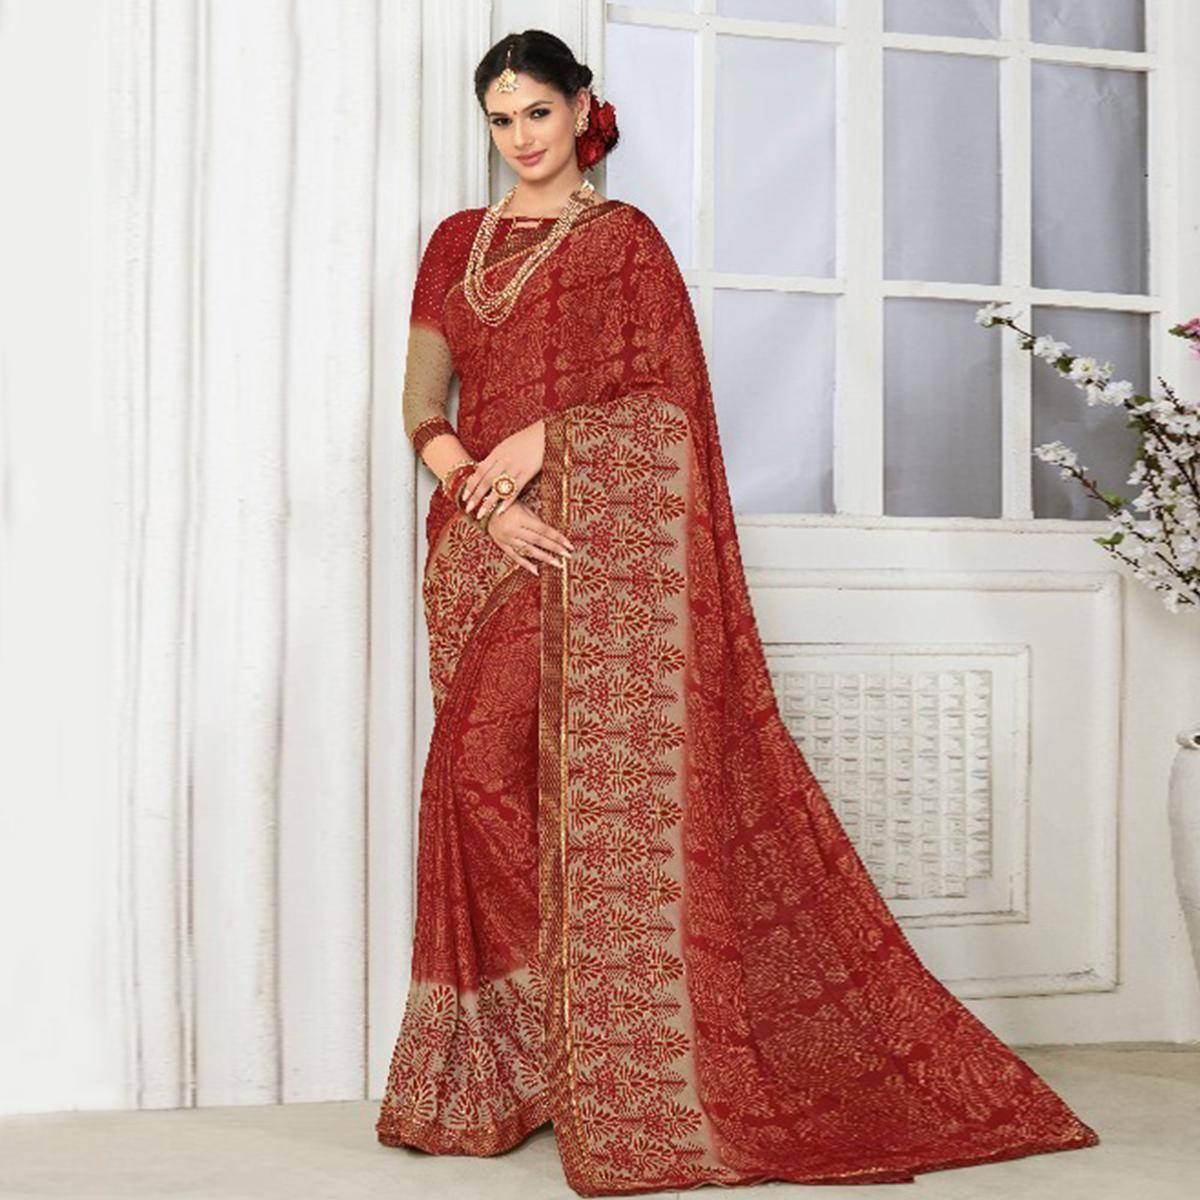 Captivating Red Colored Casual Wear Printed Chiffon Saree